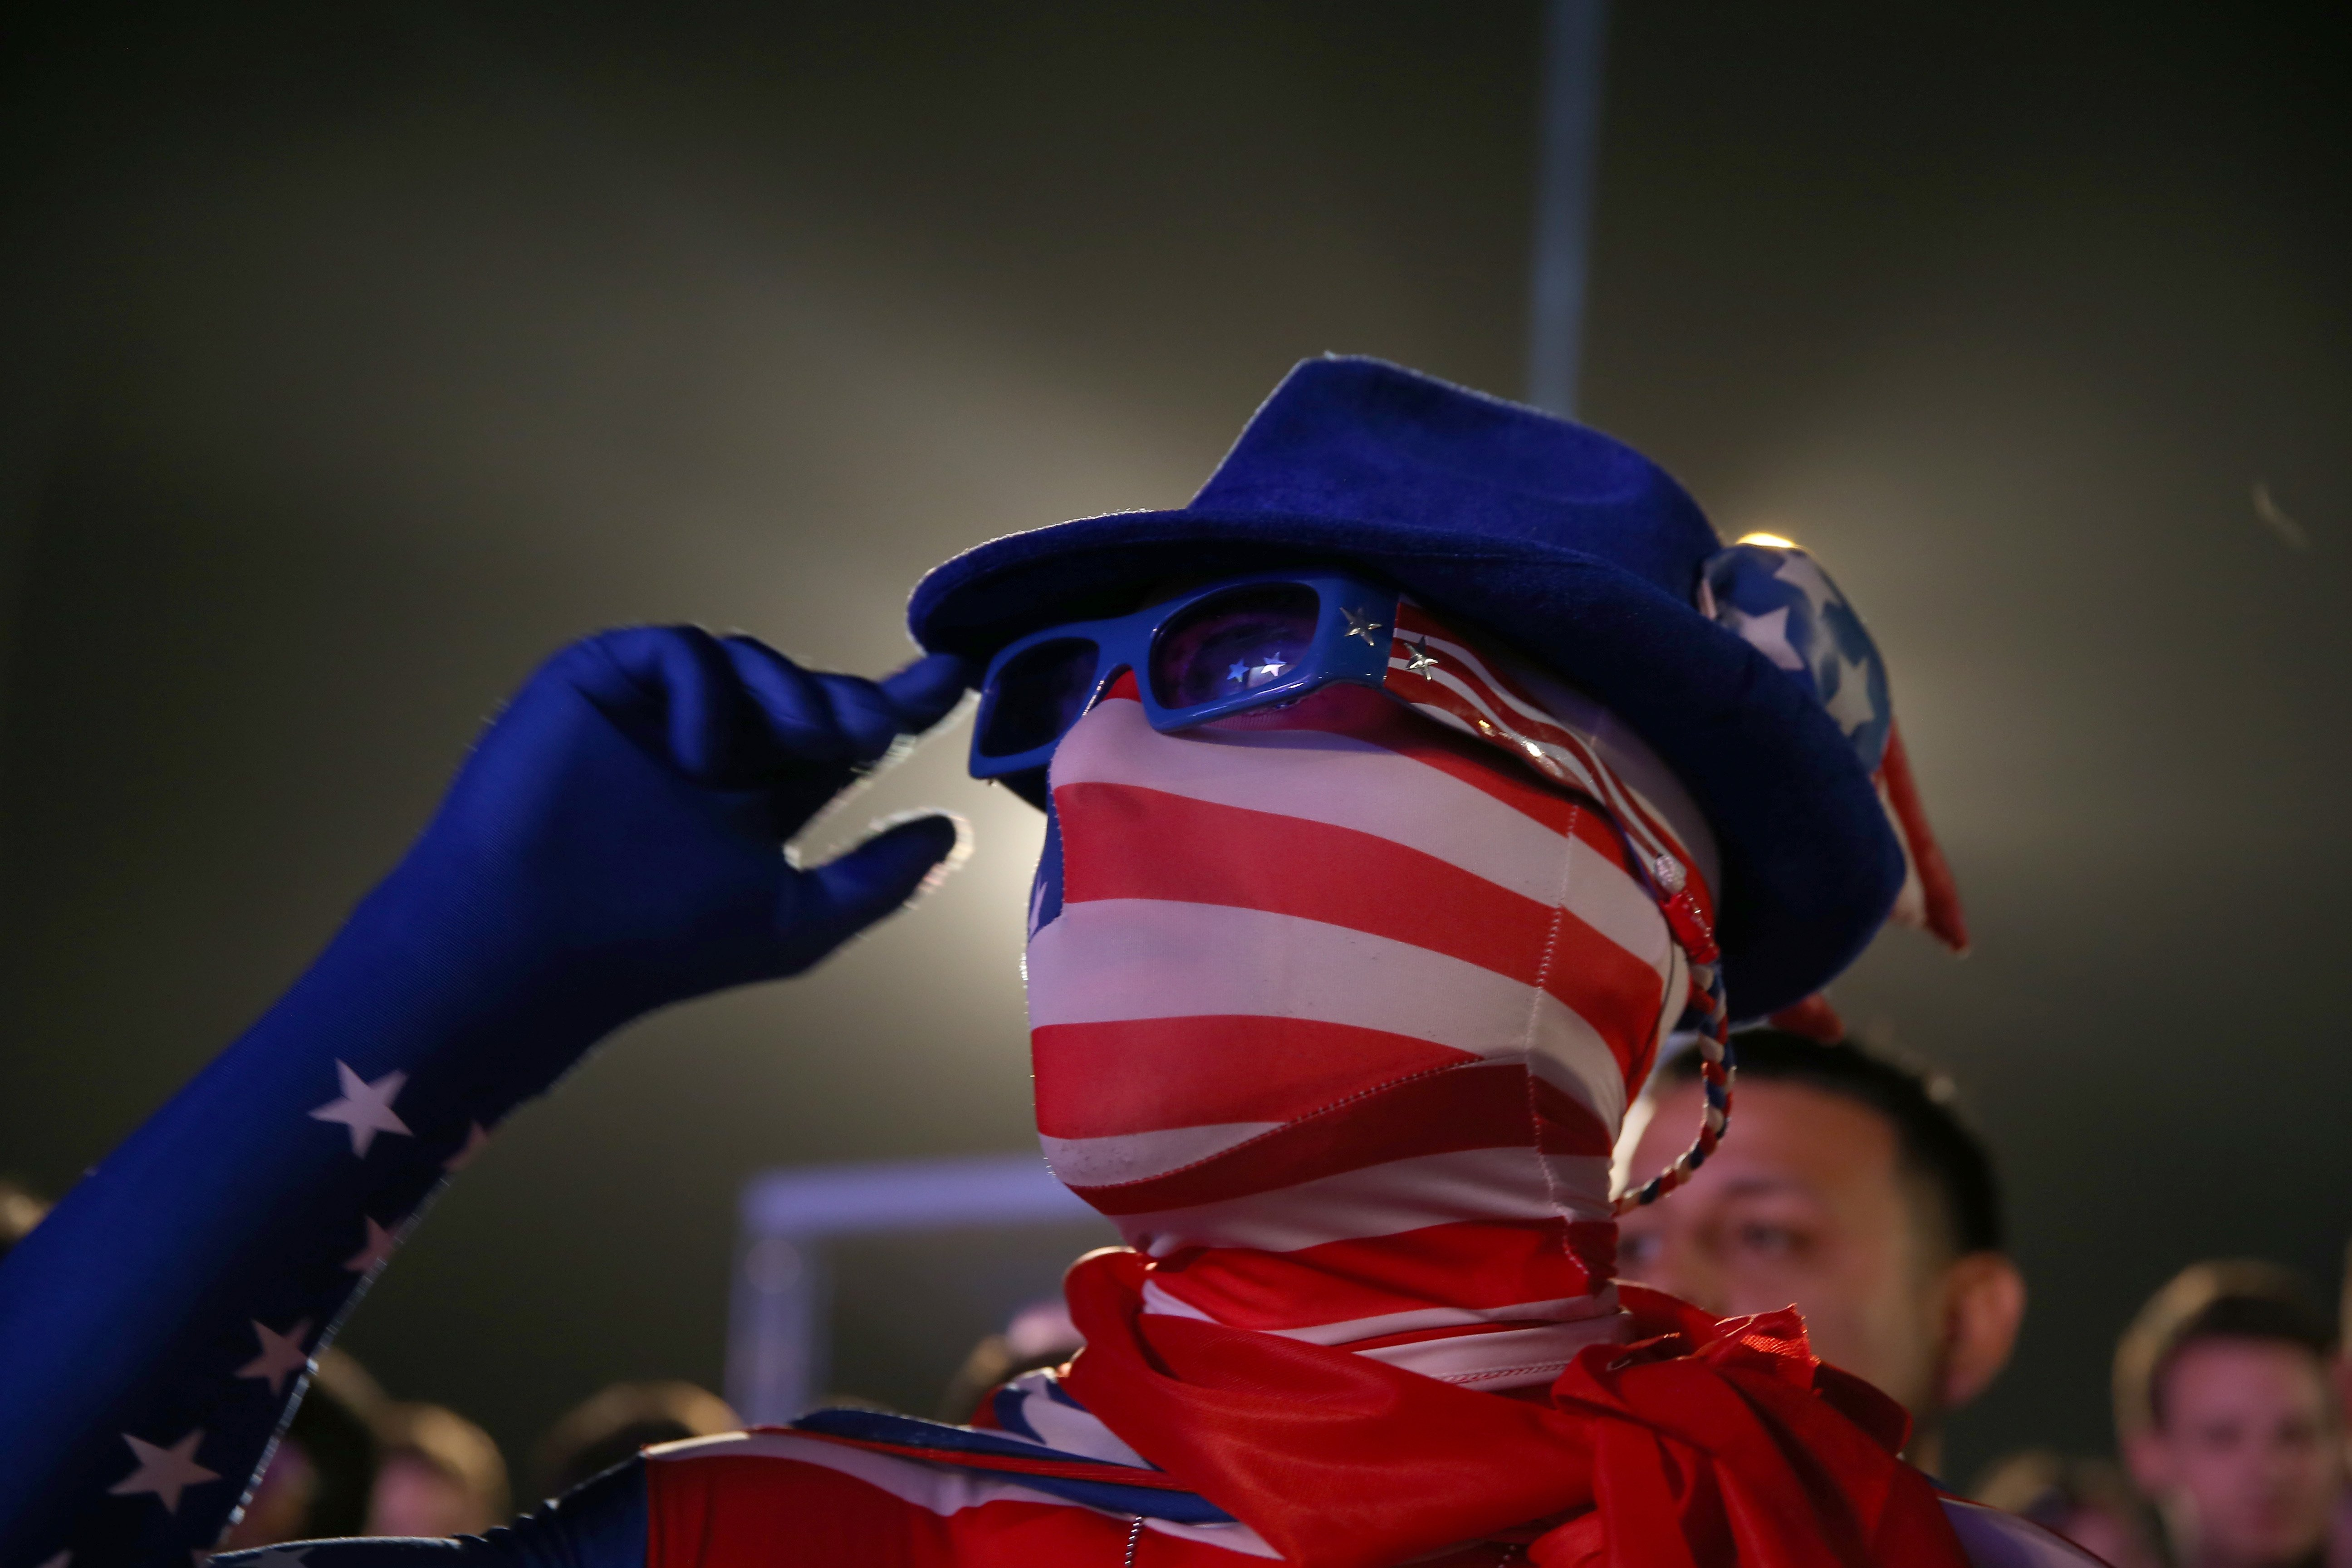 An American soccer fan waits for his team to play against Ghana at the FIFA World Cup Fan Fest on Copacabana beach on June 16, 2014 in Rio de Janeiro.